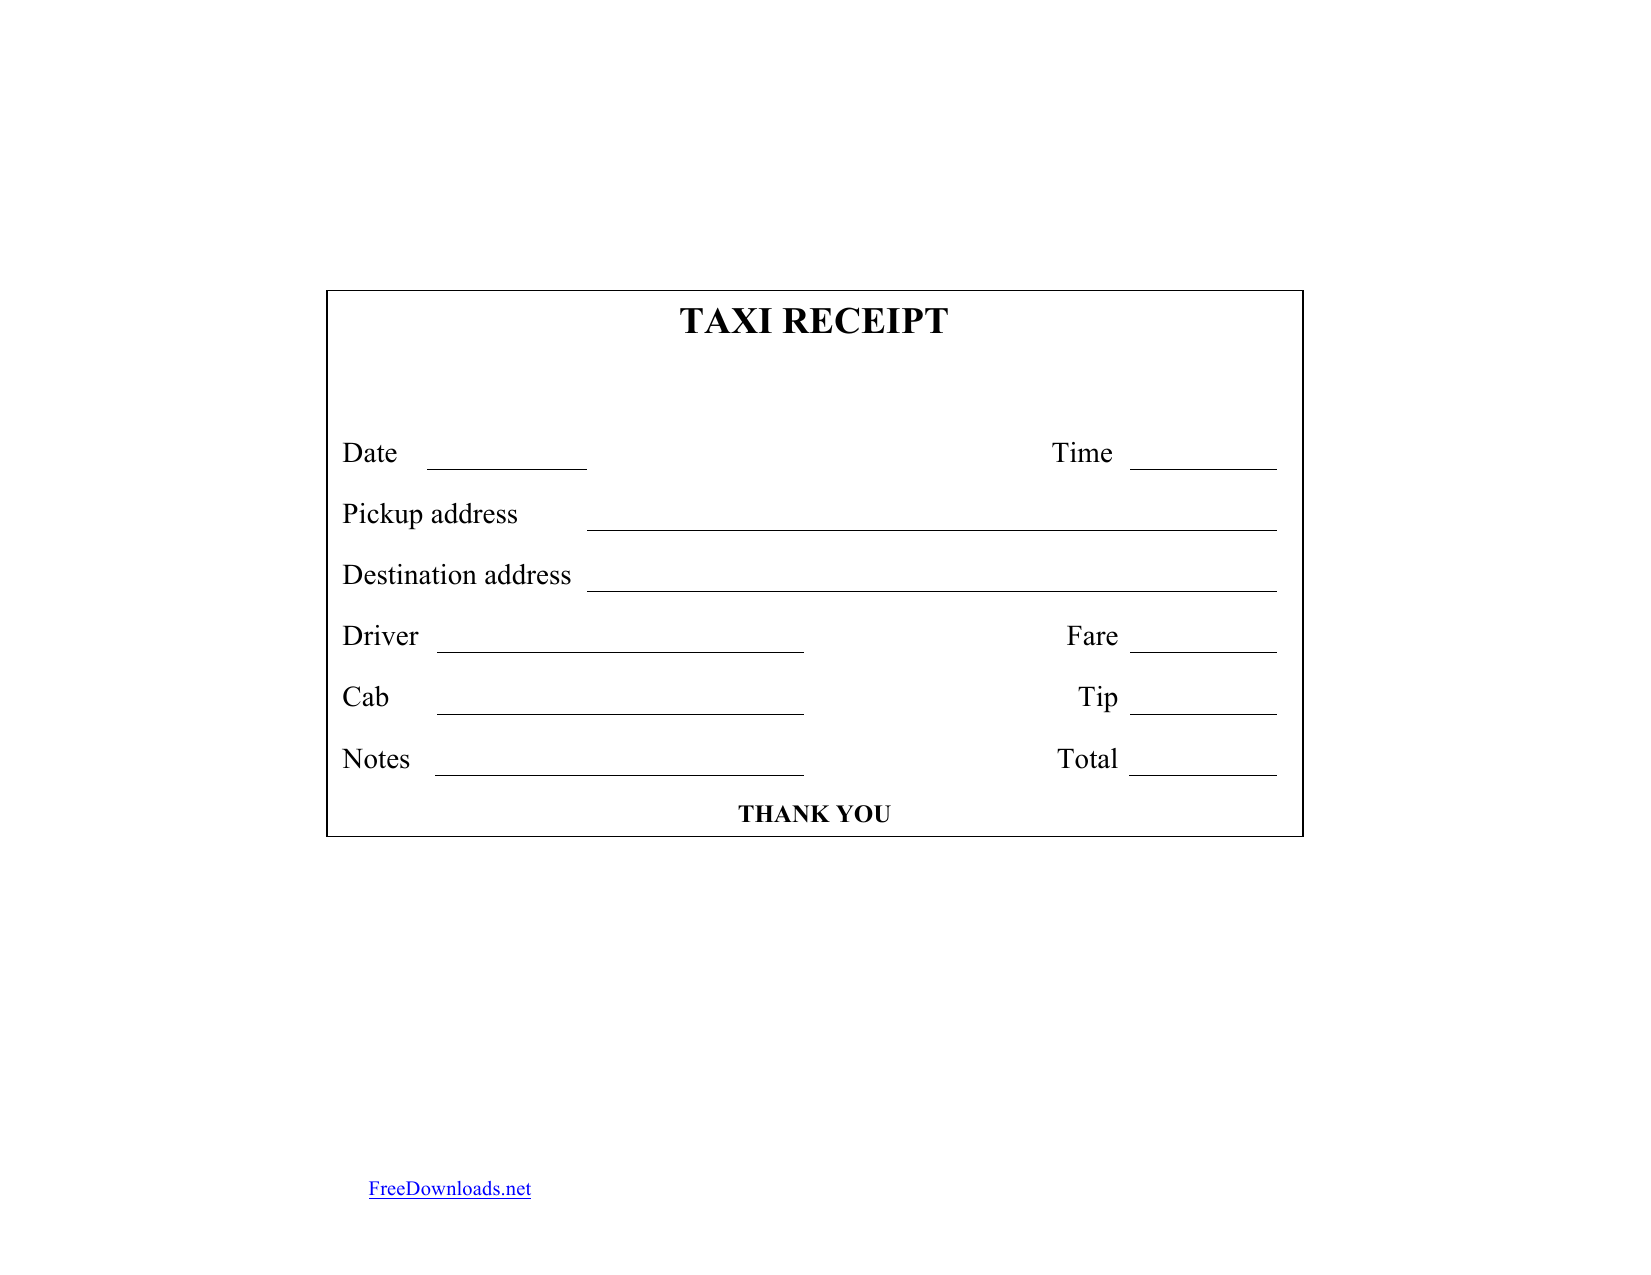 Download Blank Printable Taxi/Cab Receipt Template | Excel | PDF ...